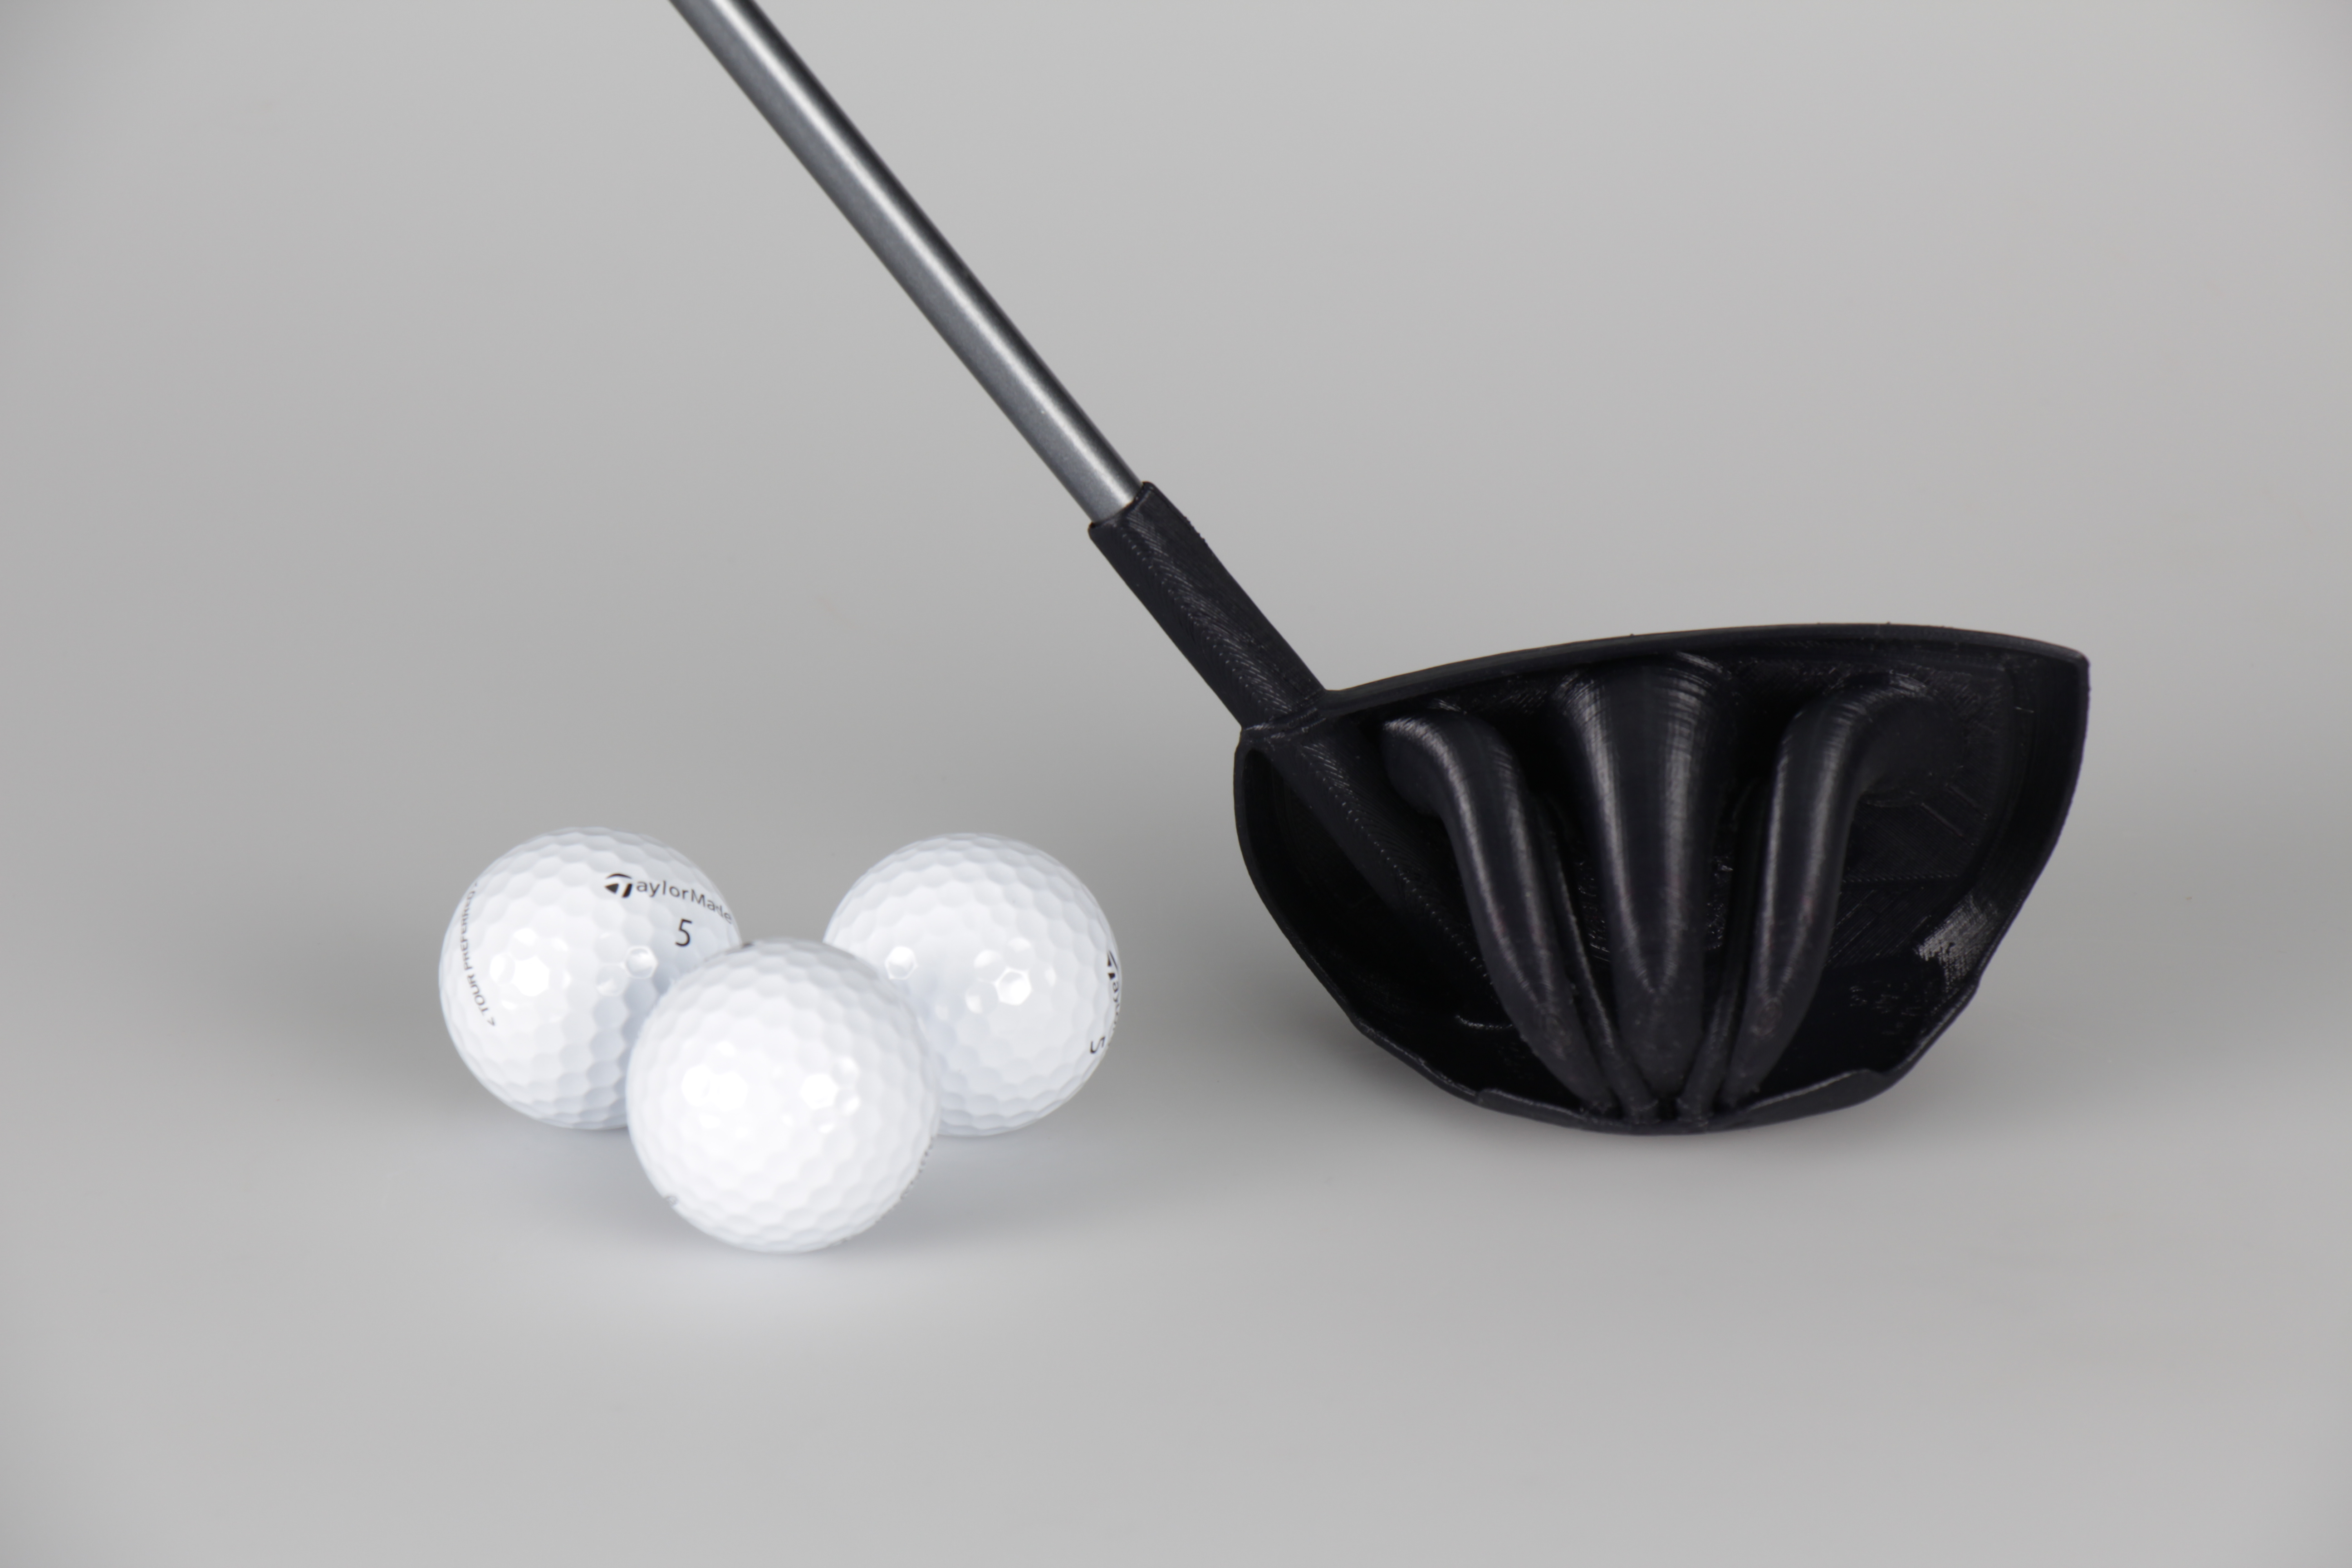 3D Printed Golf Clubs